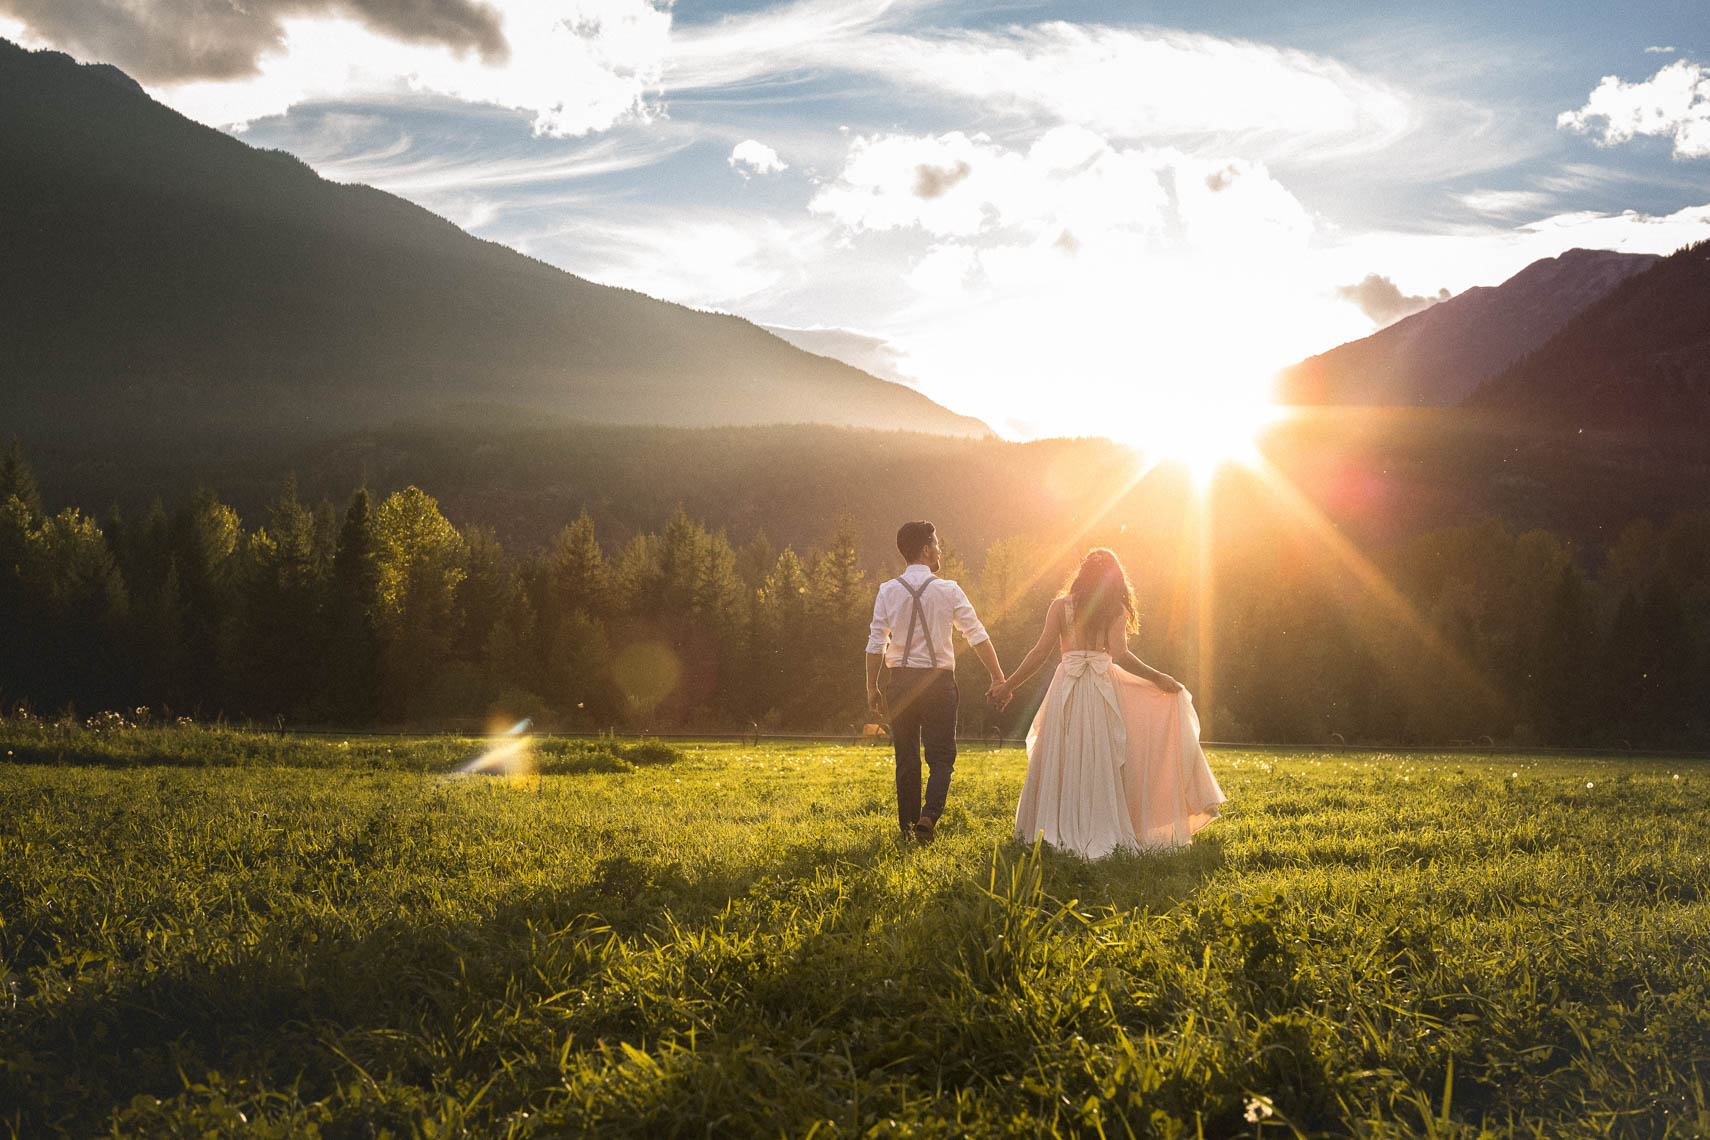 Bride and groom walk in a field after rustic vintage style wedding near Whistler, BC.